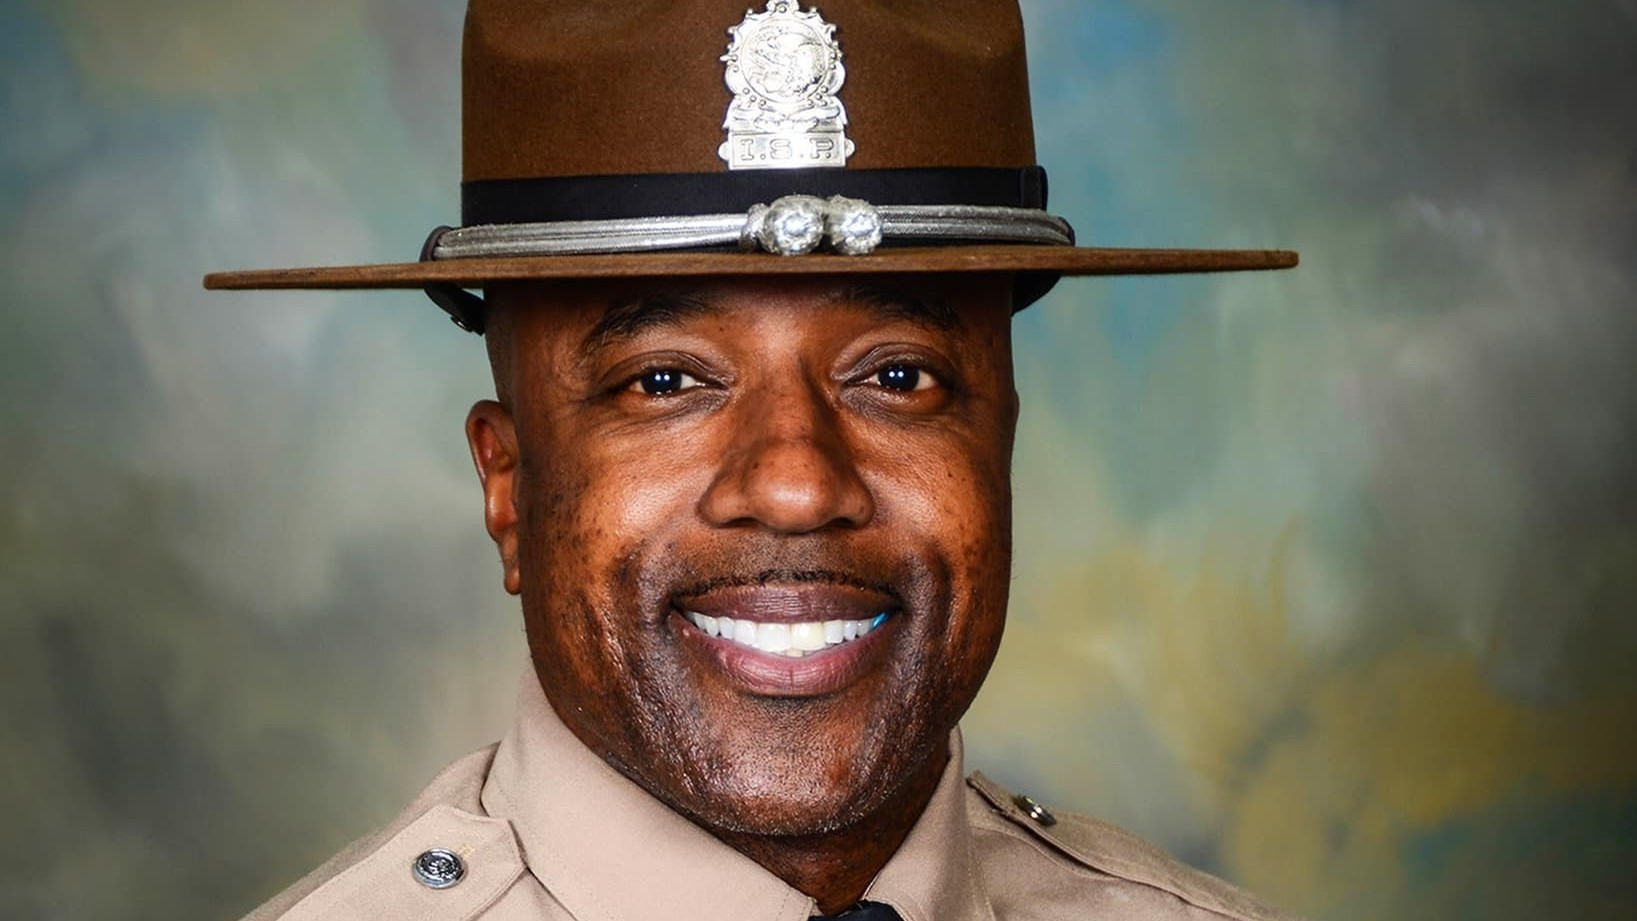 'I never knew him to have anything against anybody.' Mother at a loss after retired state trooper killed in Lisle shooting that wounded another retired trooper and an off-duty trooper.